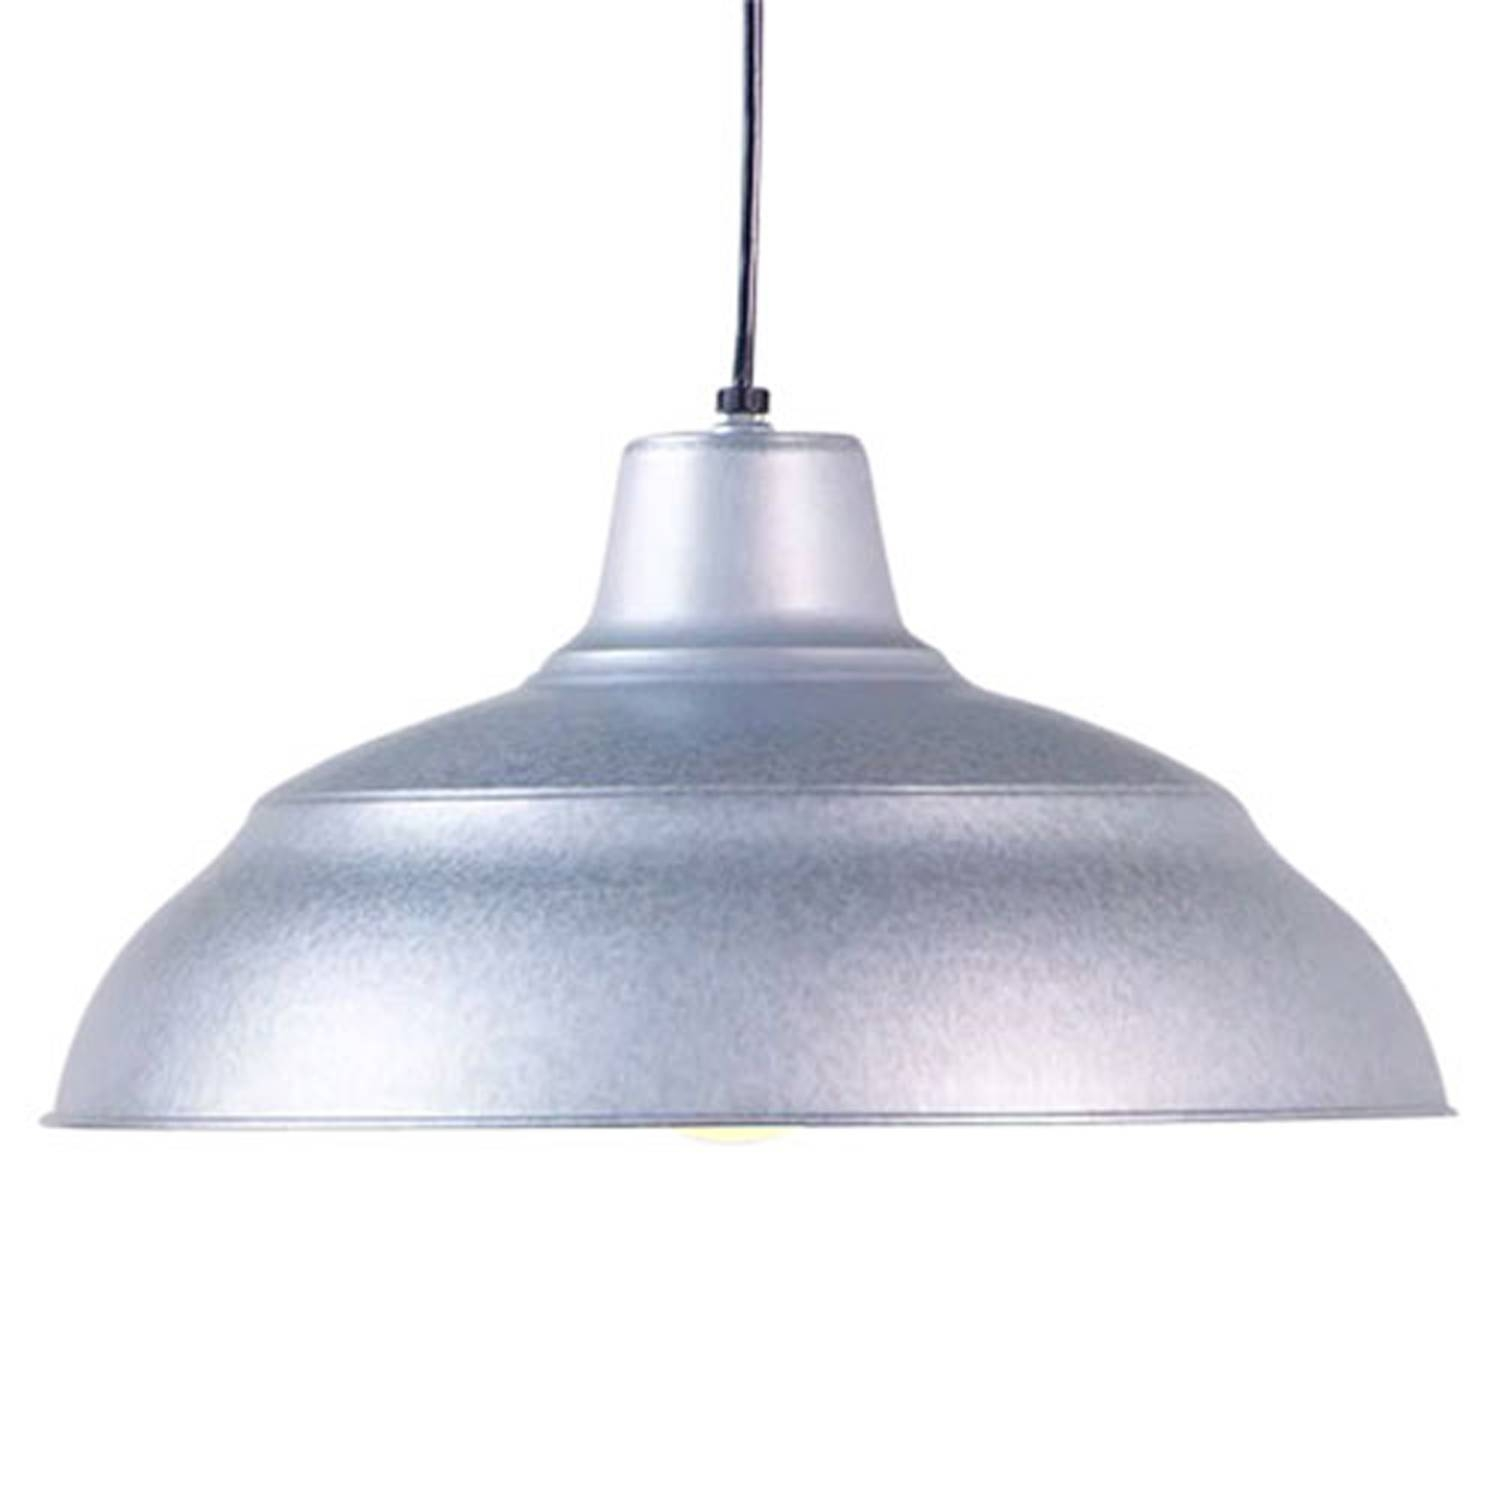 R Series Galvanized 17 Inch Warehouse Cord Hung Outdoor Pendant pertaining to Warehouse Pendant Light Fixtures (Image 9 of 15)